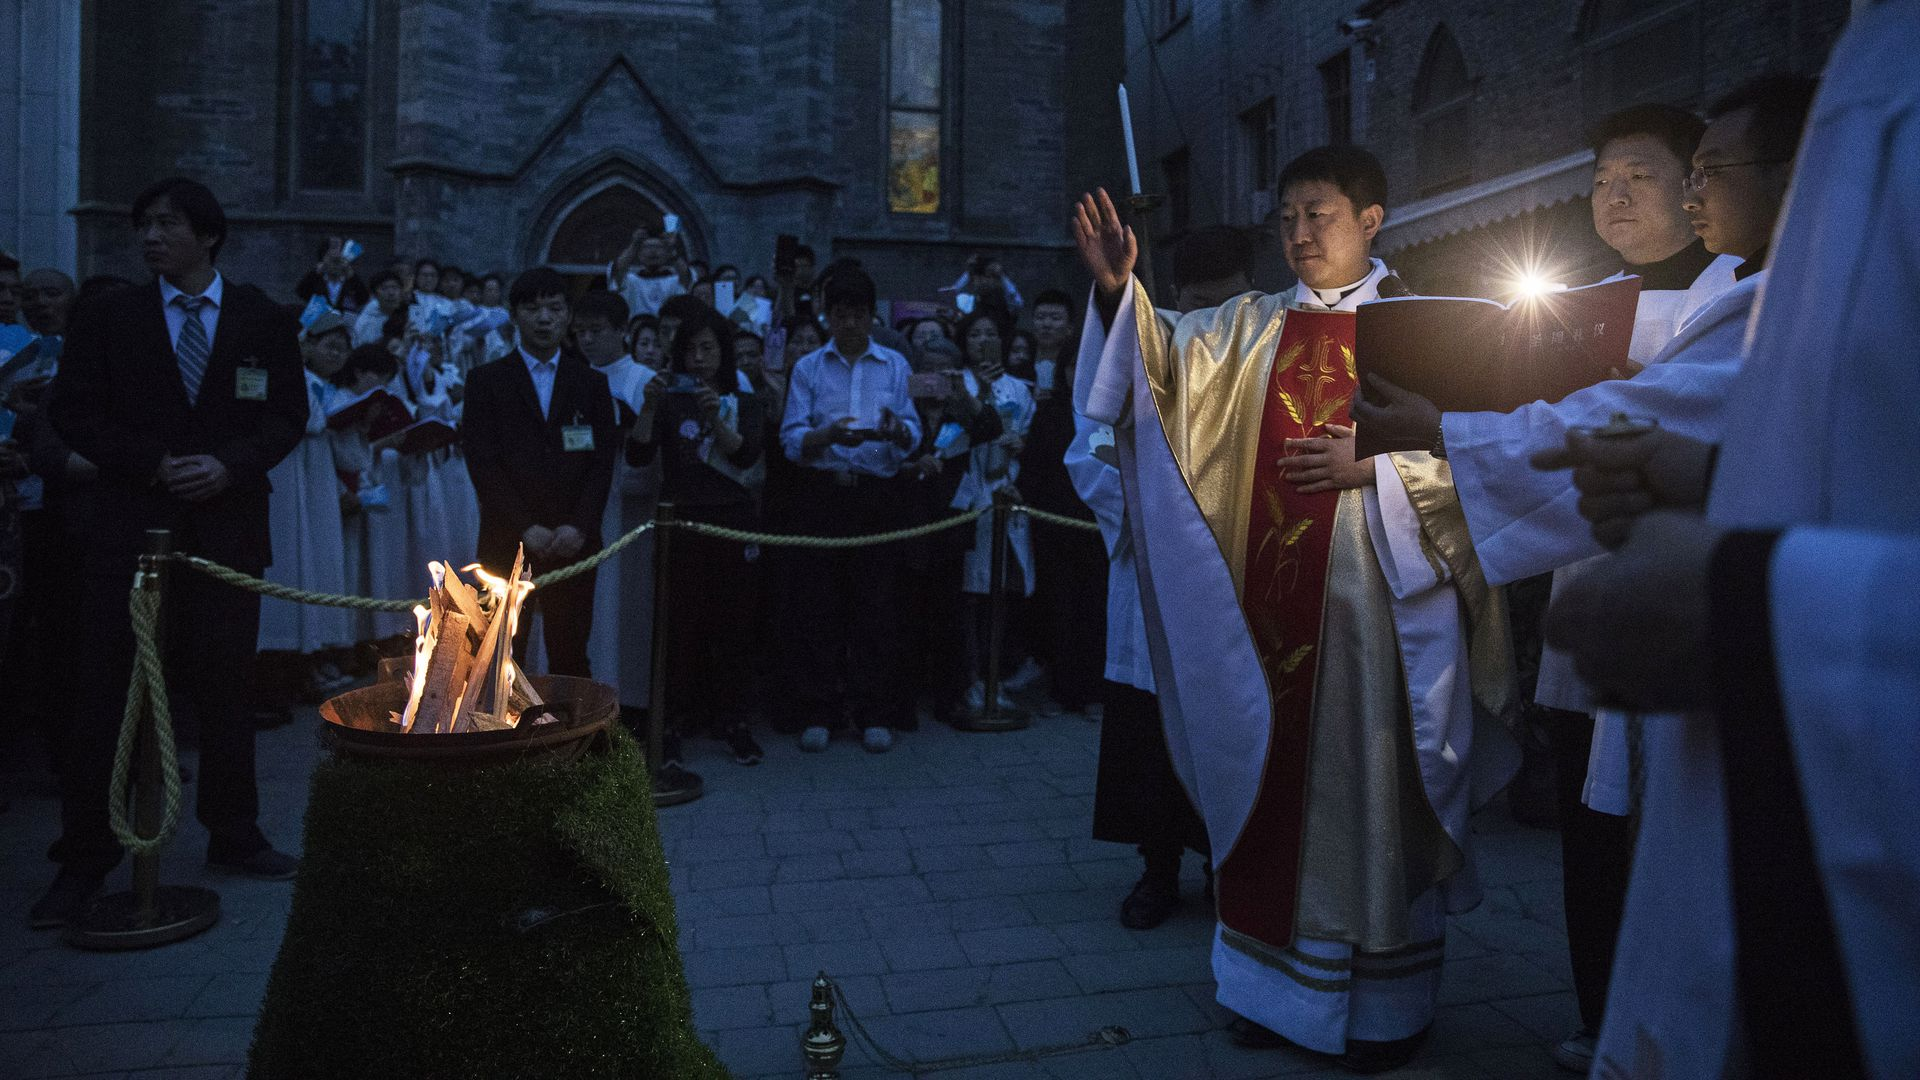 Chinese Catholic Bishop Zhang Hong blesses the flame used to light the Paschal Candle at a mass during Easter celebrations in 2017 in Beijing.